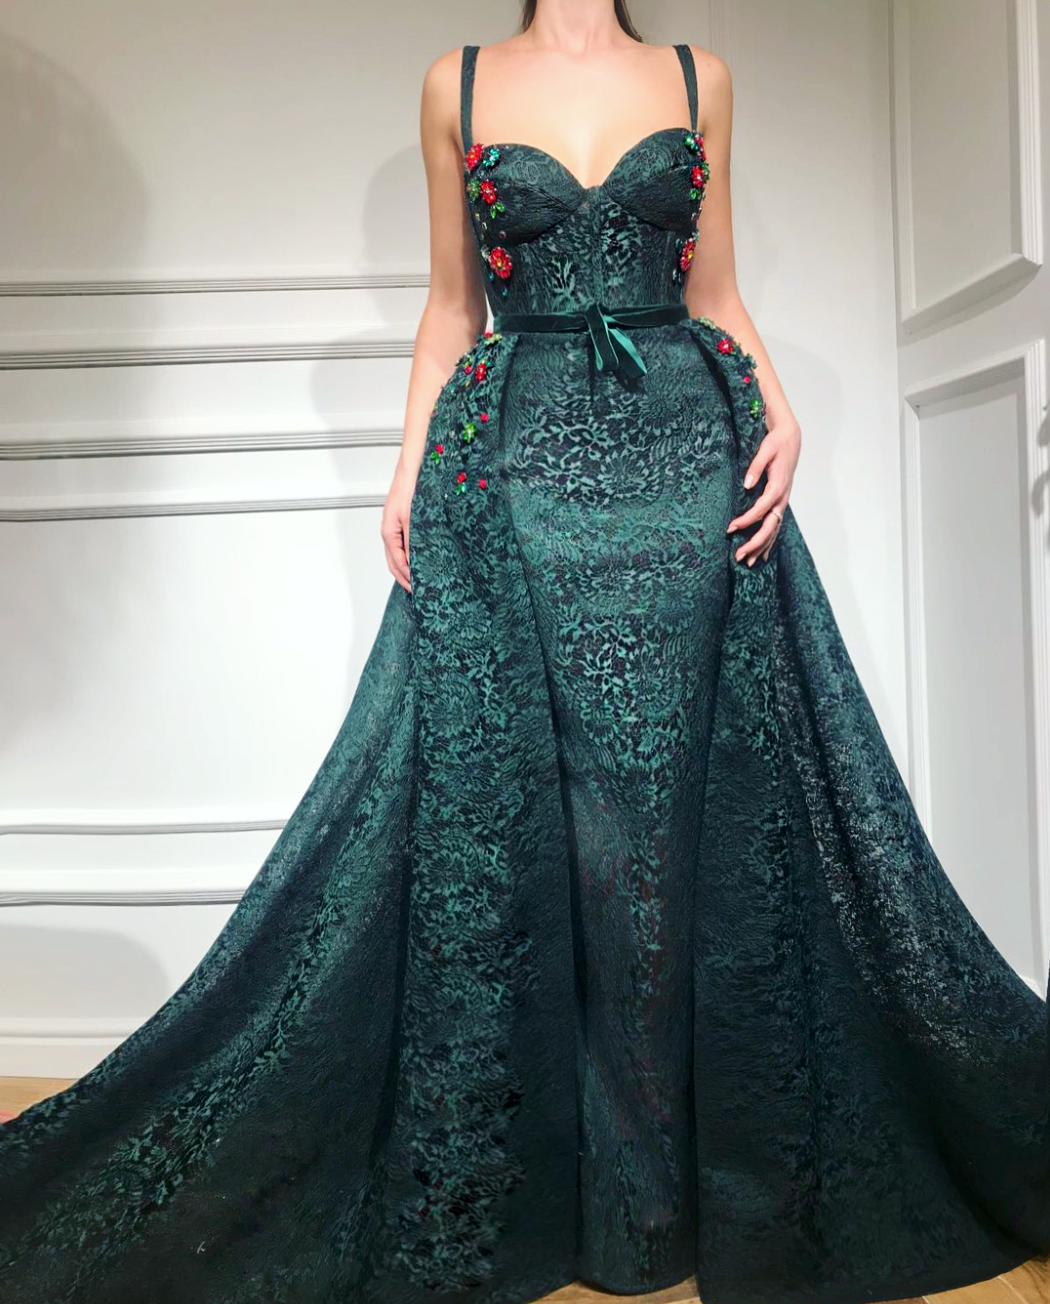 Jericho jade tmd gown in couturegowns dresses gowns prom